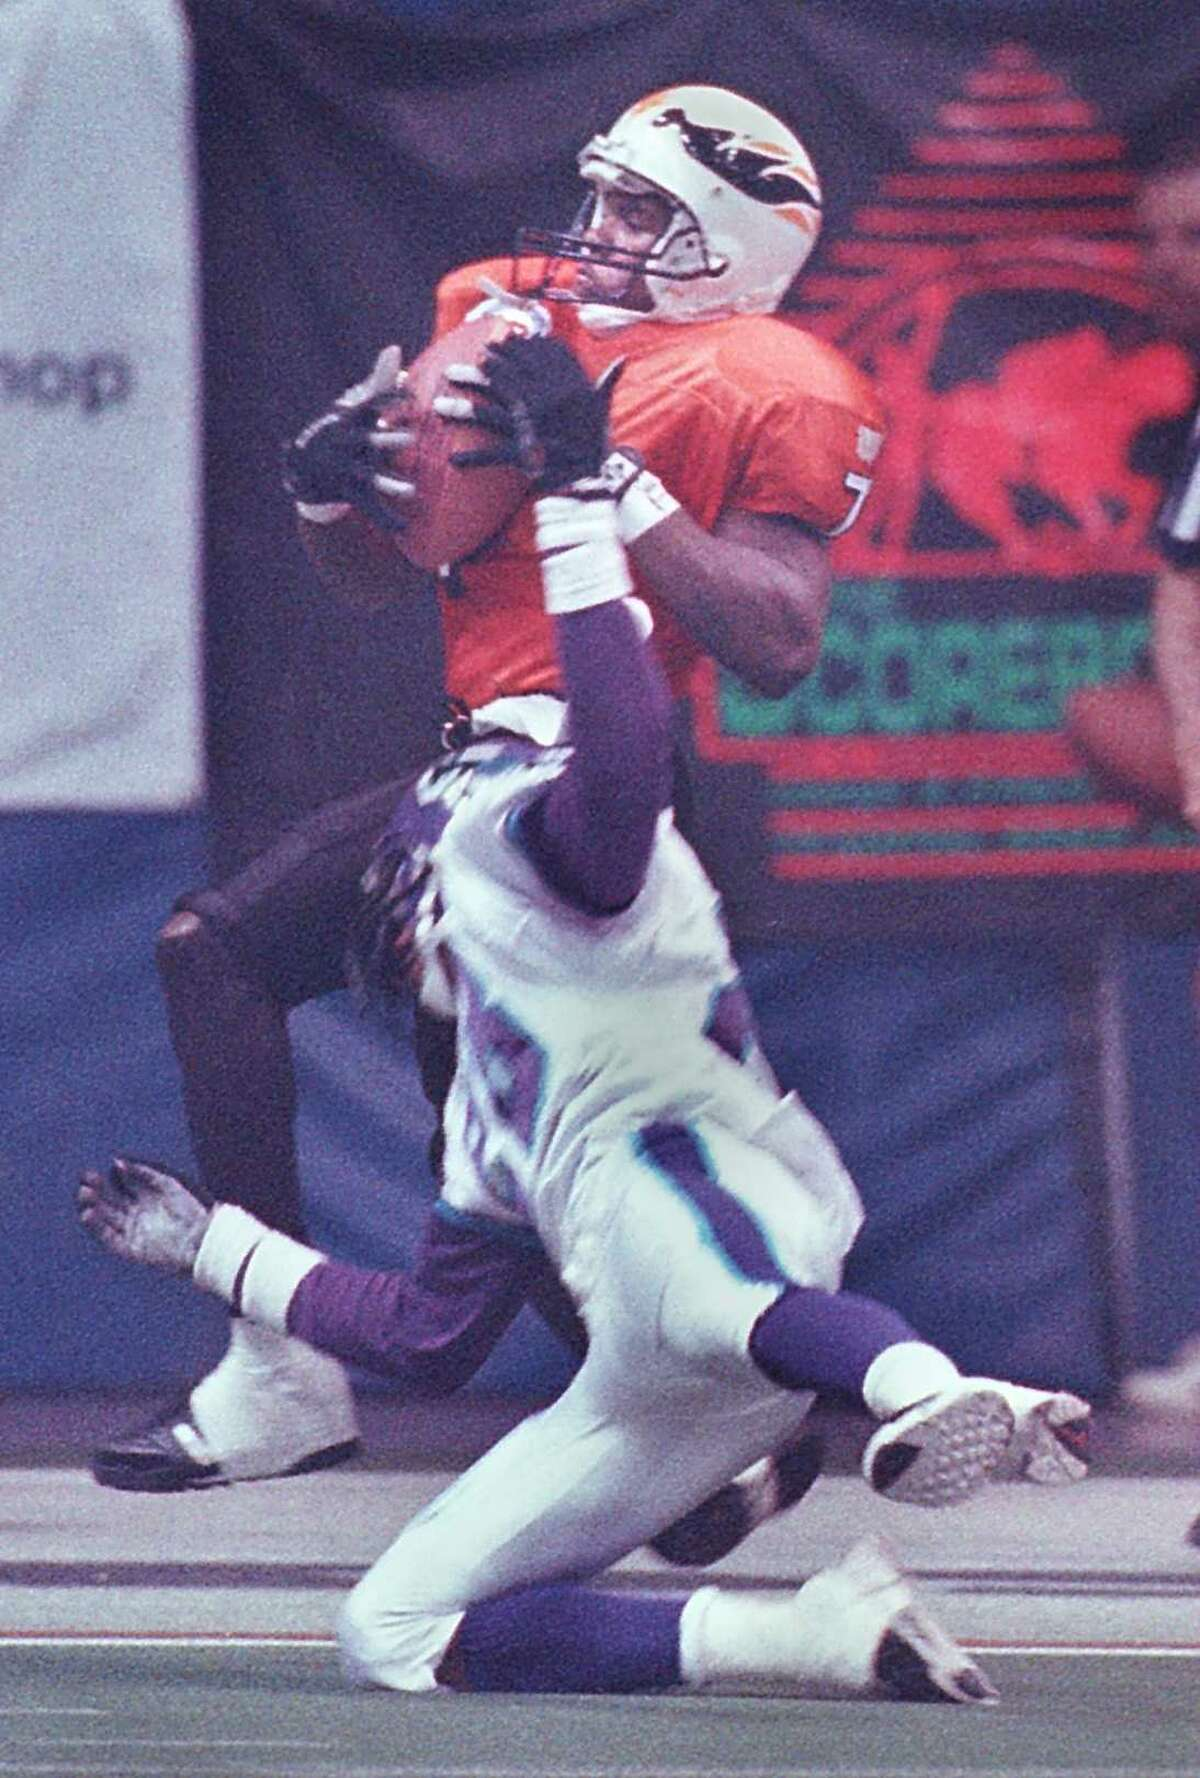 David Patten caught on with the Albany Firebirds in 1996 before going on to a 12-year NFL career. (Times Union archive)